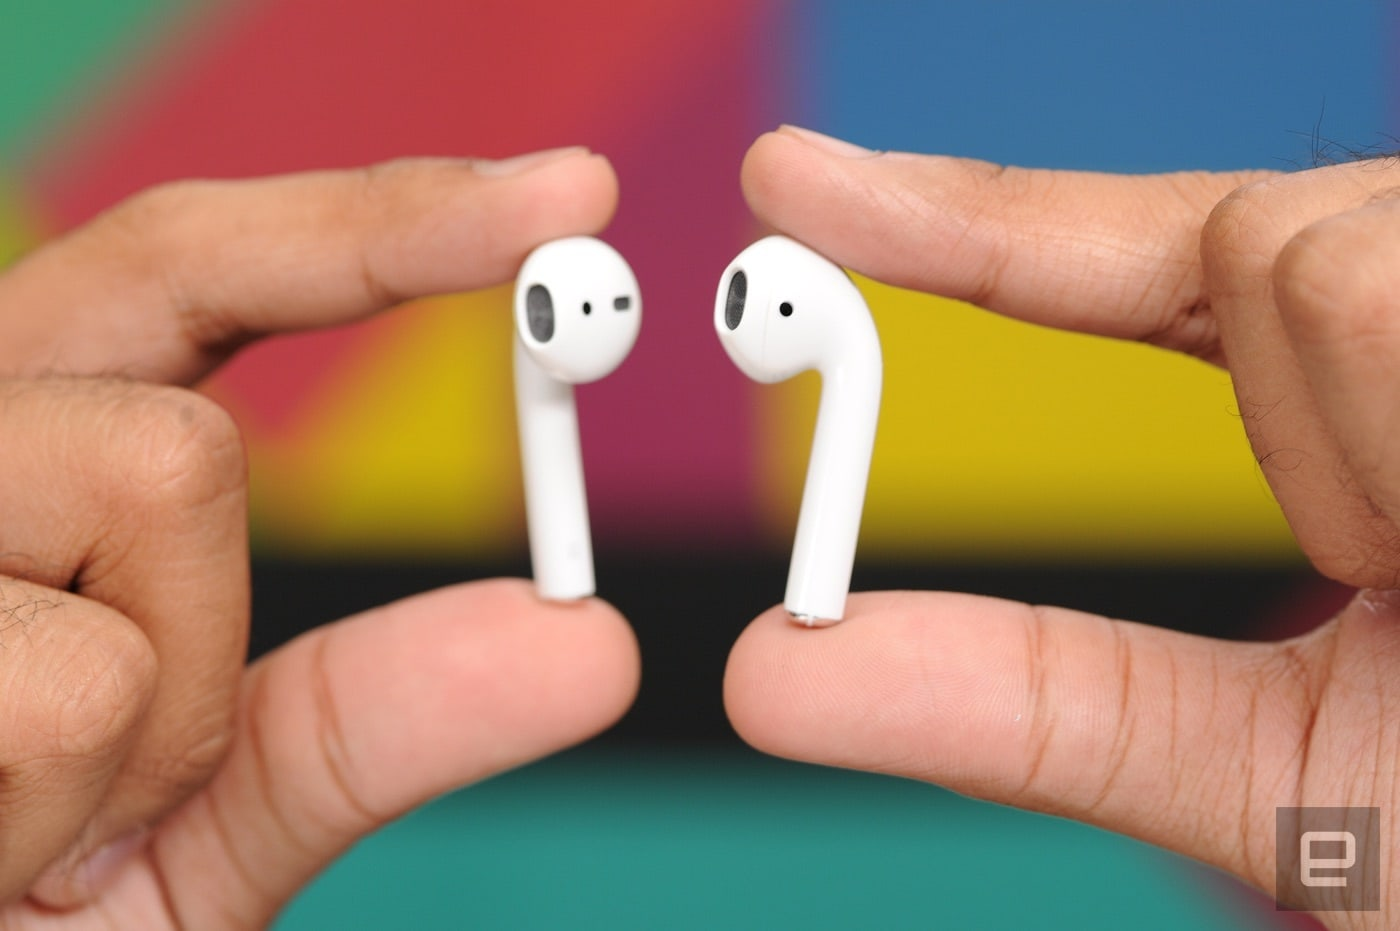 Recommended Reading: Your AirPods are going to die